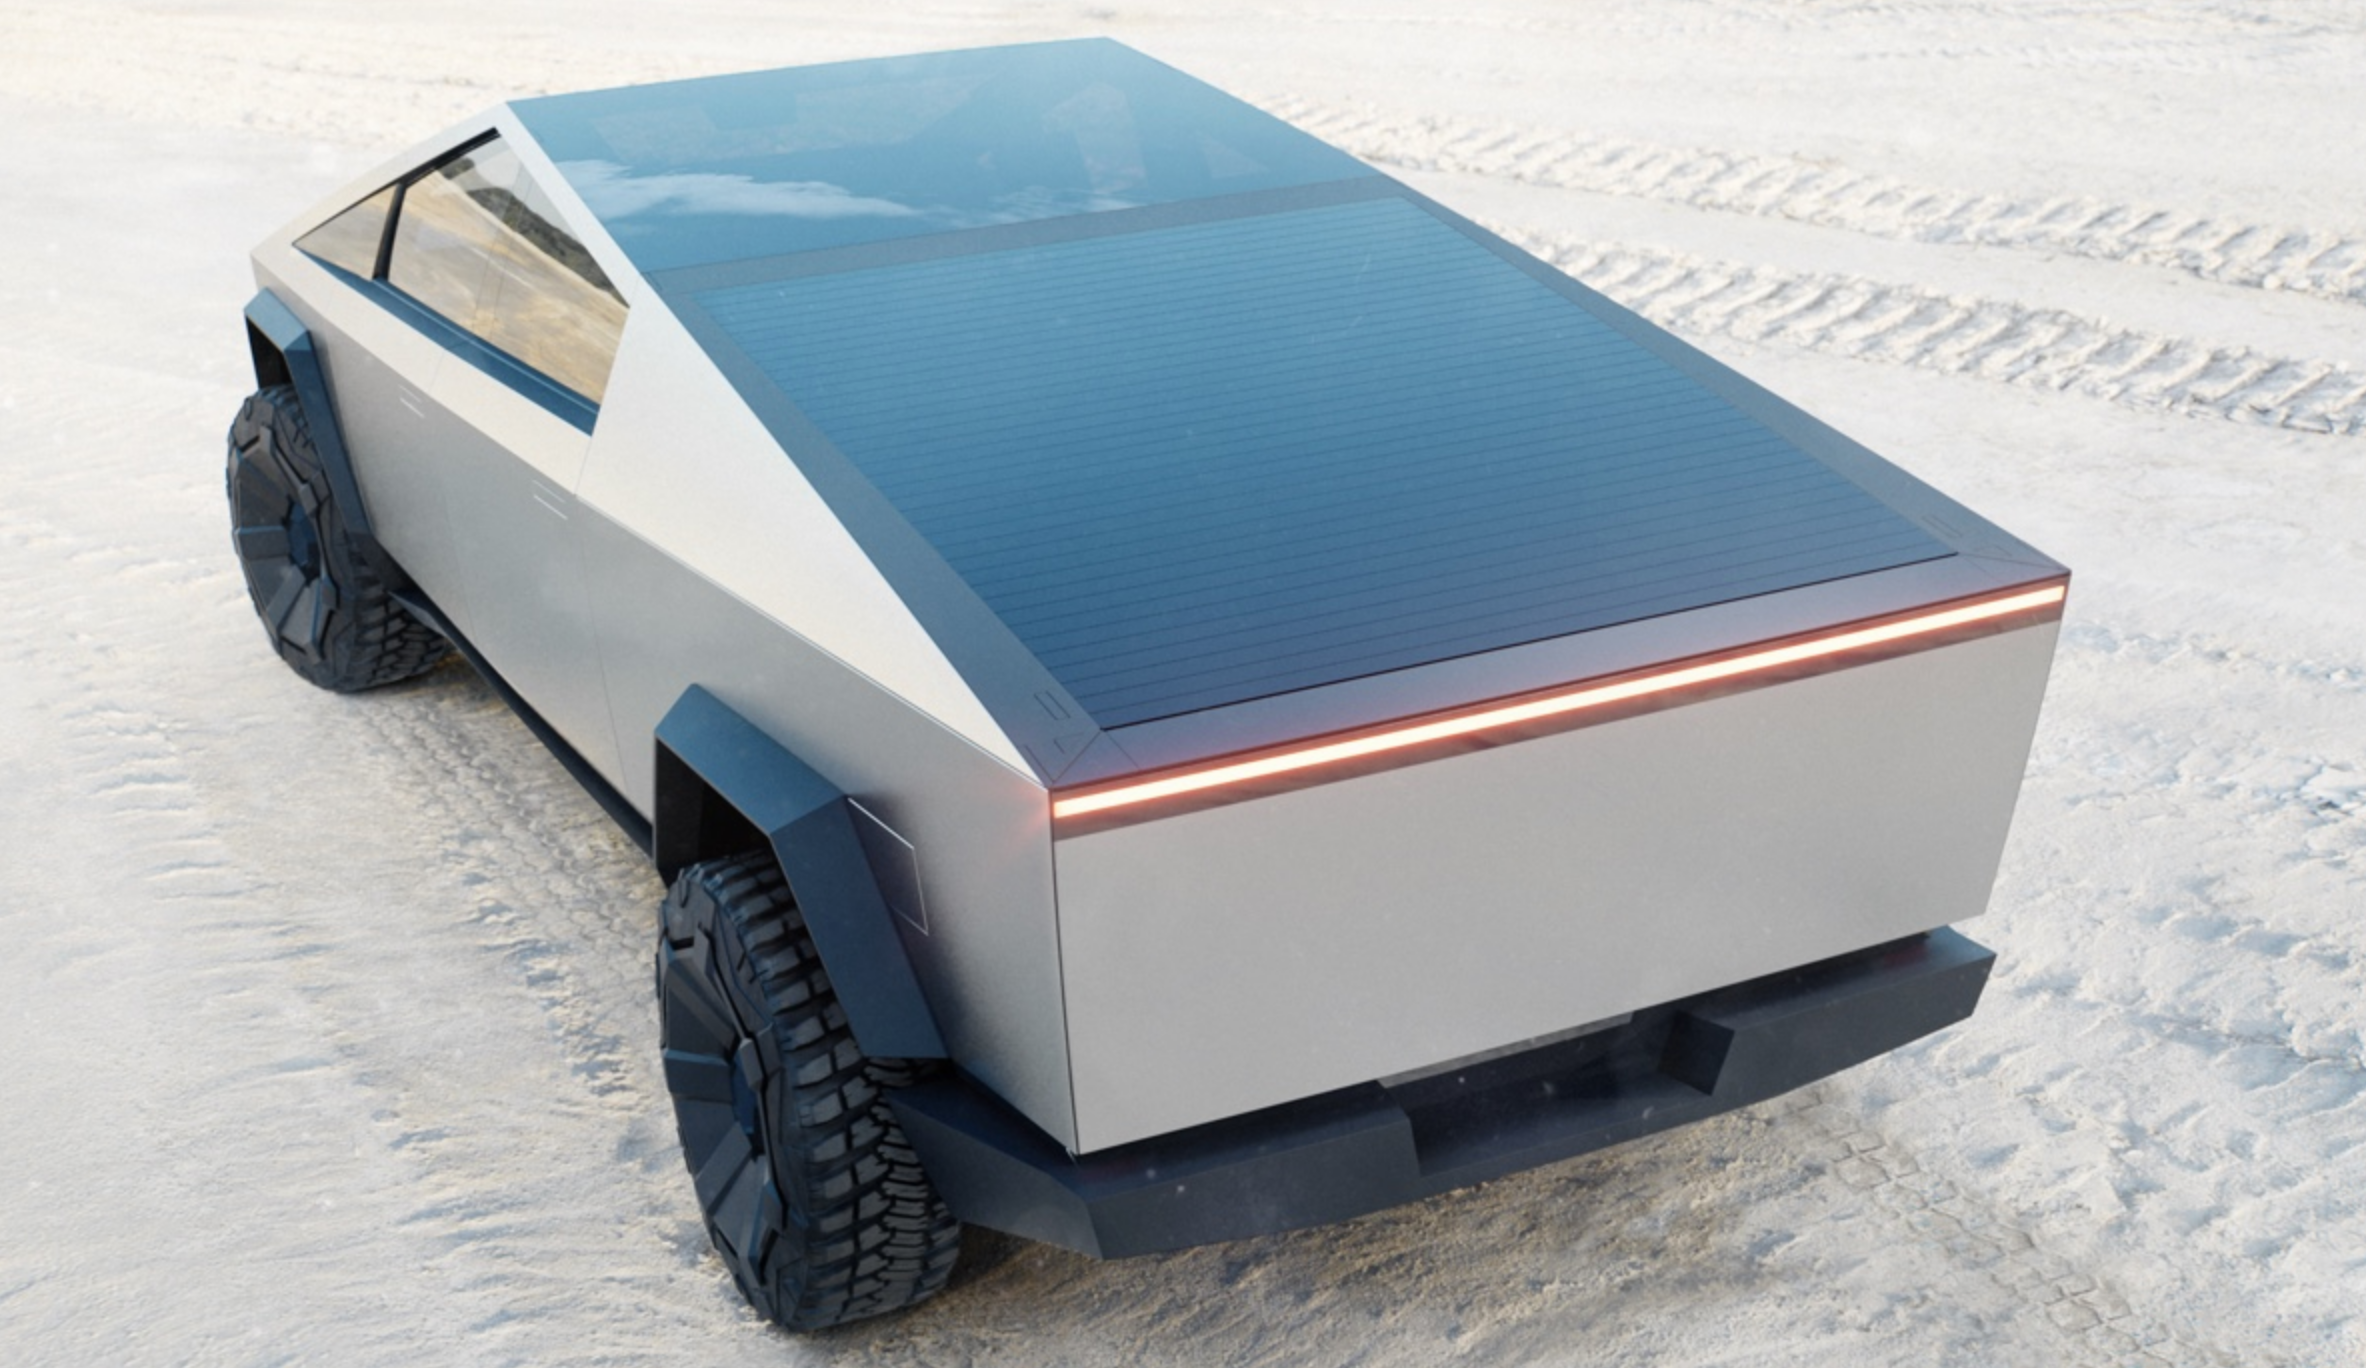 Tesla Cybertruck Will Be Firms First Solar Car Elon Musk Confirms The Tesla Ceo Once Derided Solar Cars It See Solar Car Electric Pickup Truck Pickup Trucks